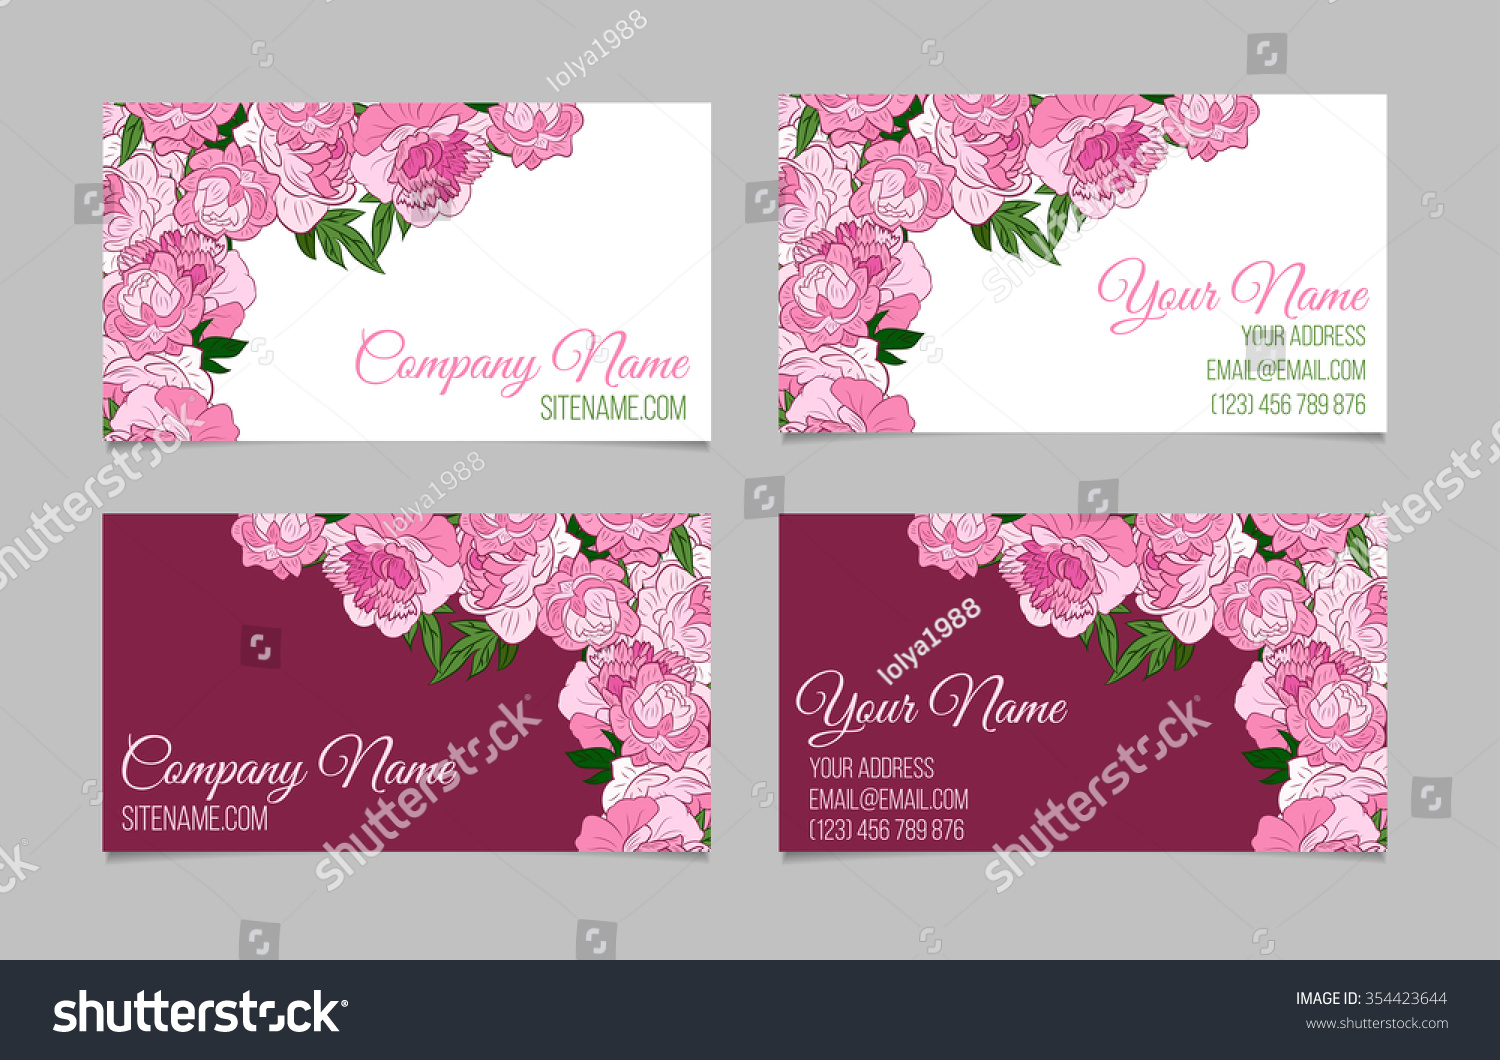 floral business card template - Military.bralicious.co